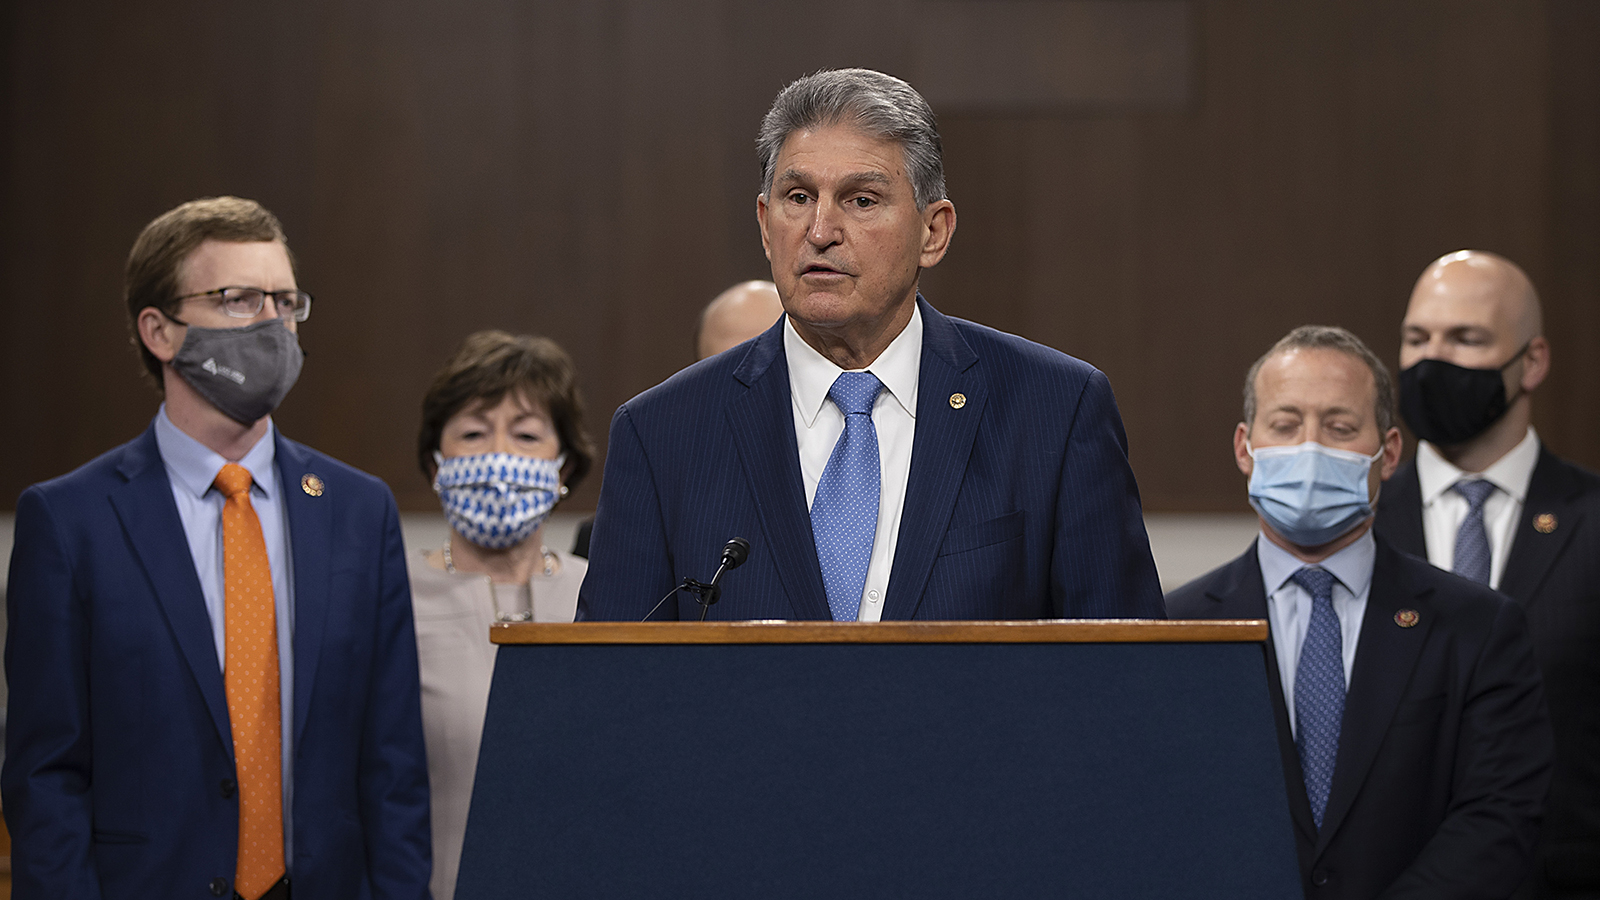 Sen. Joe Manchin speaks alongside a bipartisan group of Democrat and Republican members of Congress as they announce a proposal for a Covid-19 relief bill on Capitol Hill on December 1, in Washington.